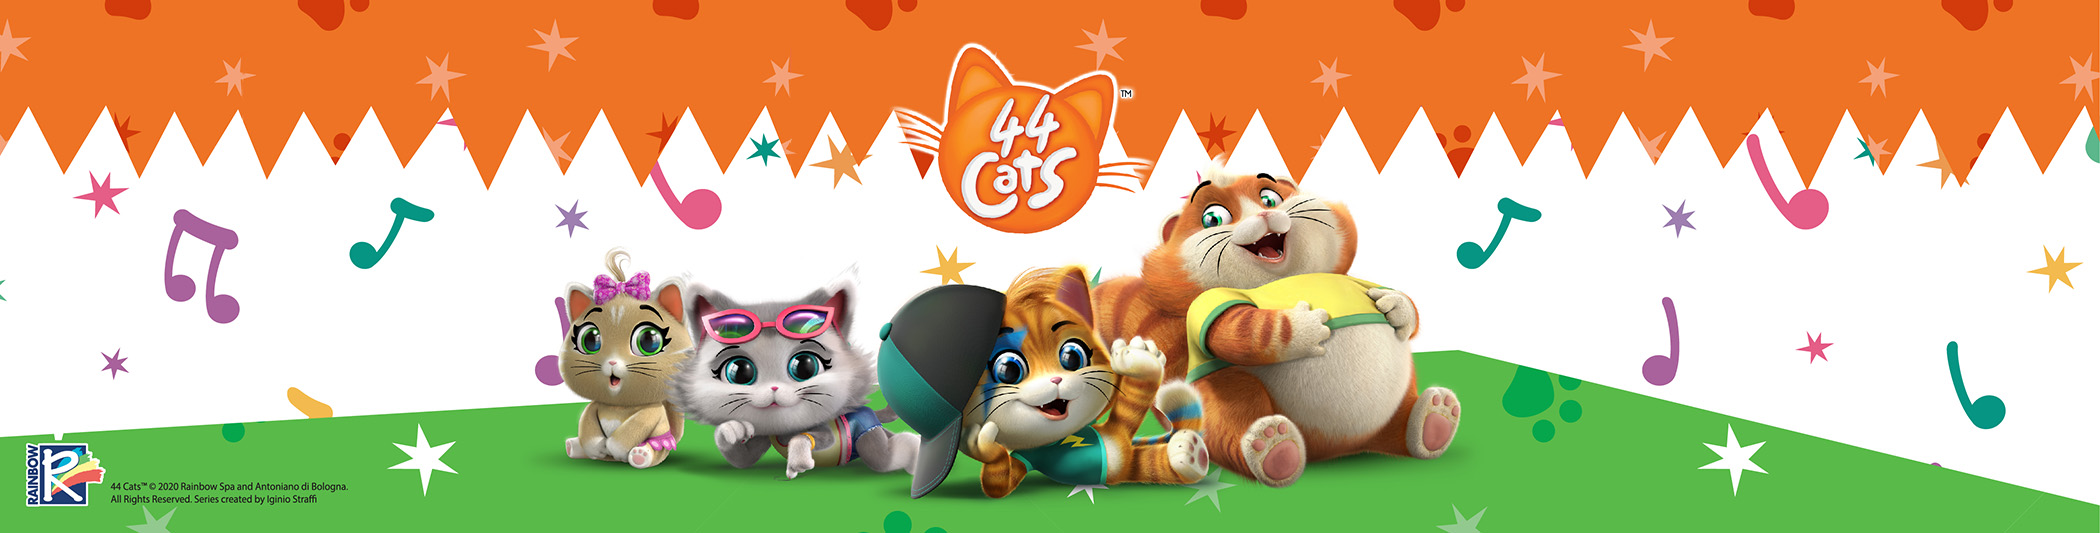 44cats banner